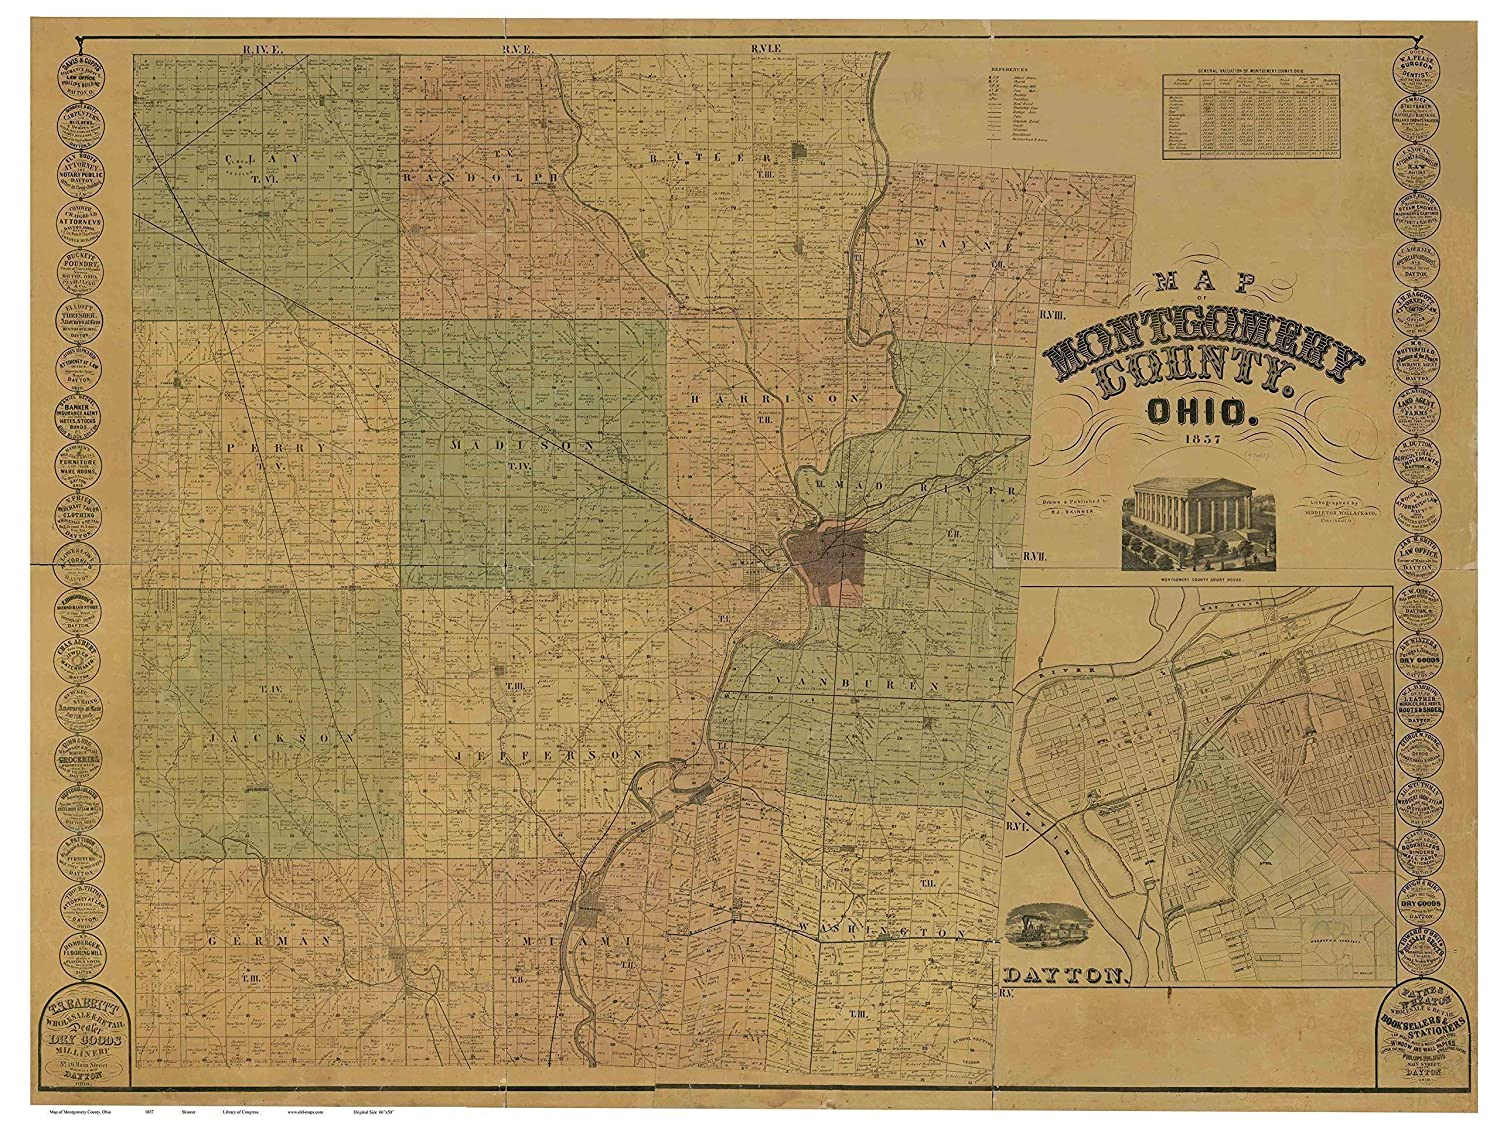 Amazon.com: Montgomery County Ohio 1857 - Wall Map with Homeowner Names -  Farm Lines - Old Map Reprint: Handmade